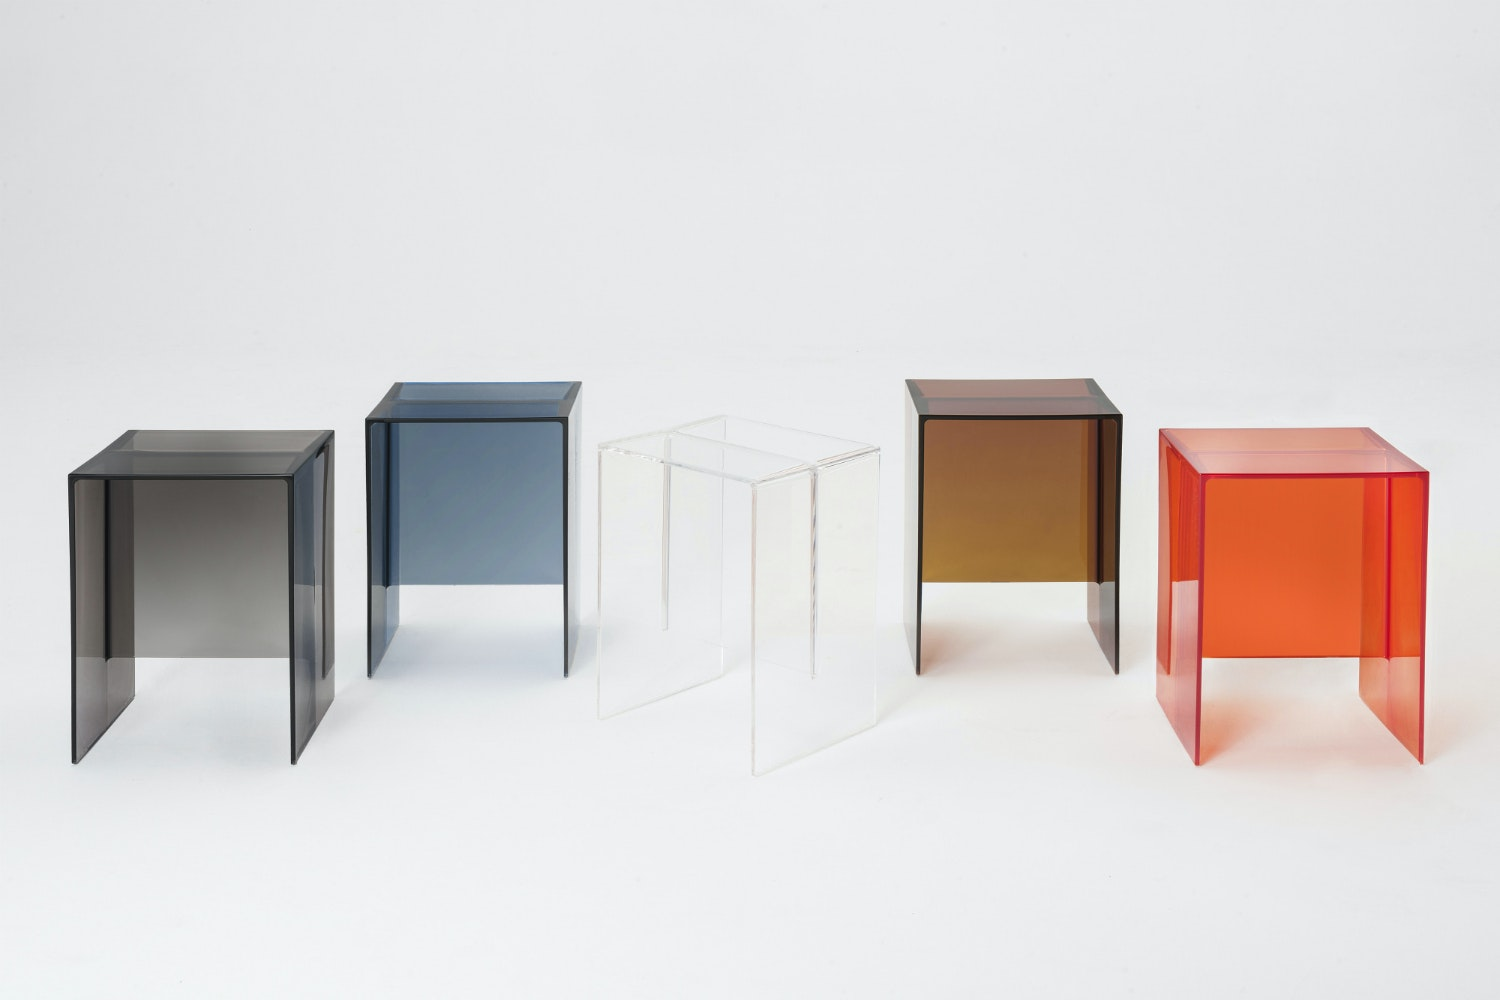 Max-Beam Side Table/Stool by Ludovica & Roberto Palomba for Kartell